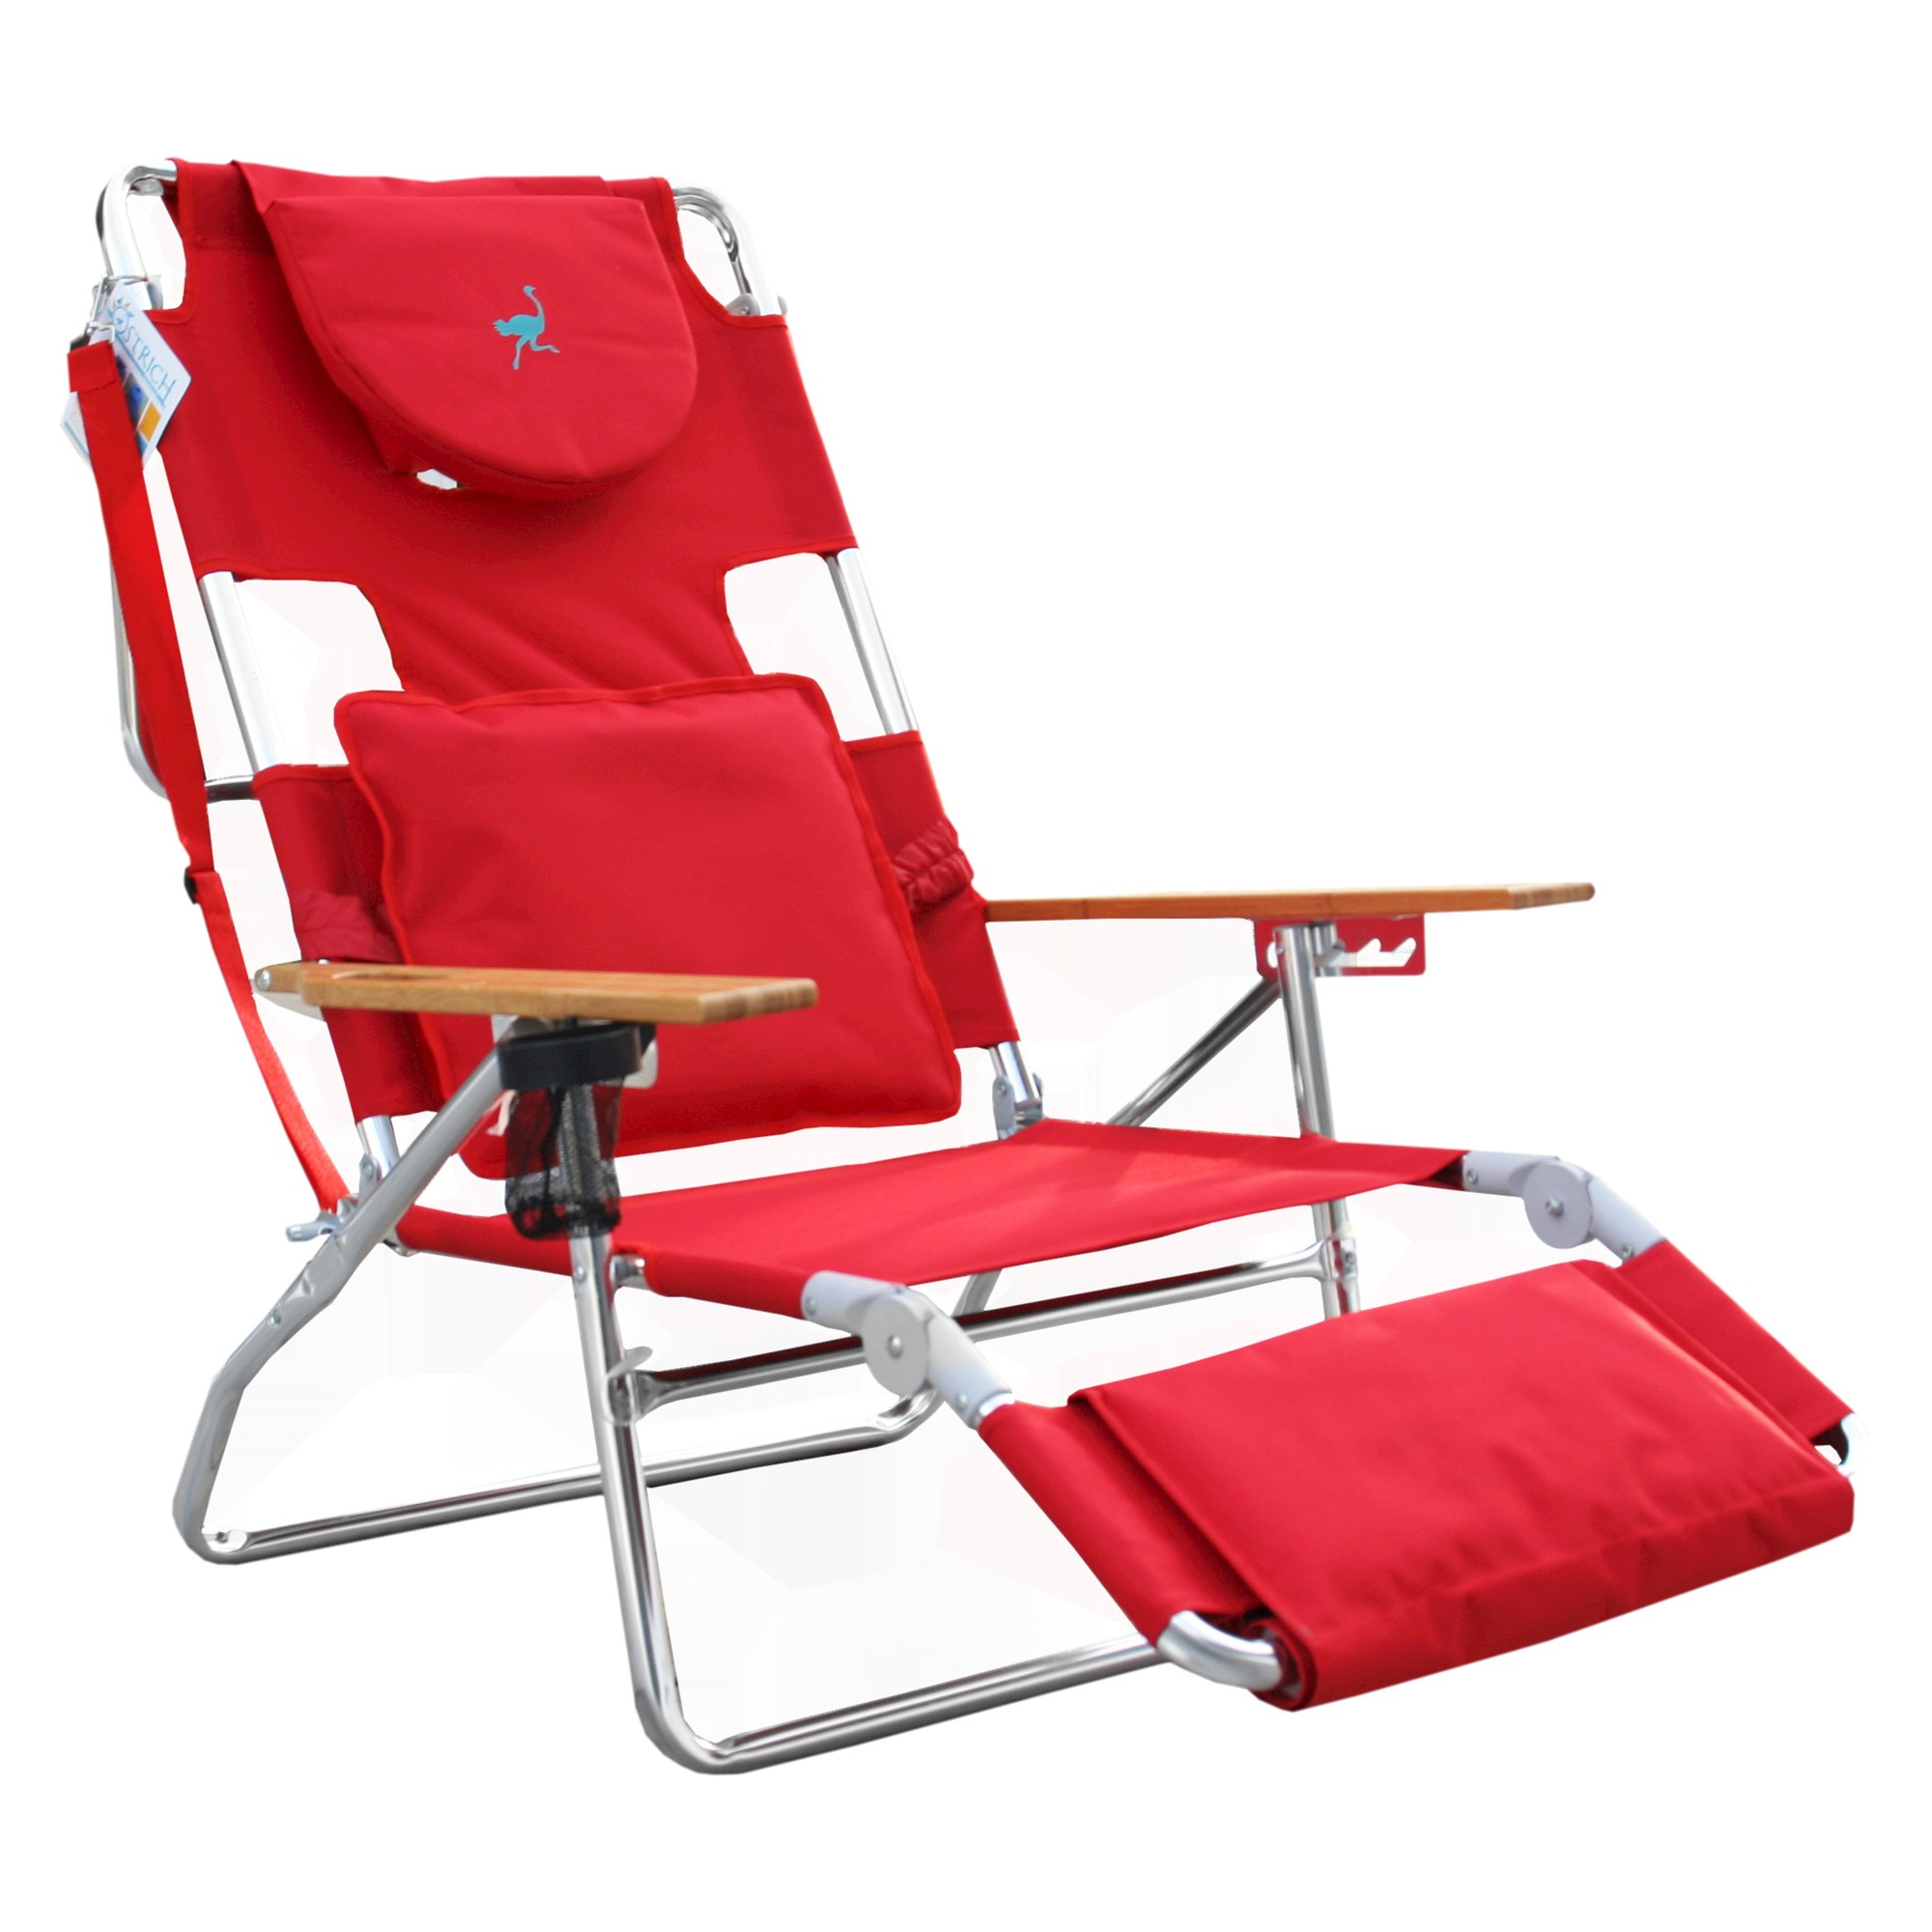 Sensational Ostrich Deluxe 3 In 1 Face Down Beach Chair Red Deltess Gamerscity Chair Design For Home Gamerscityorg